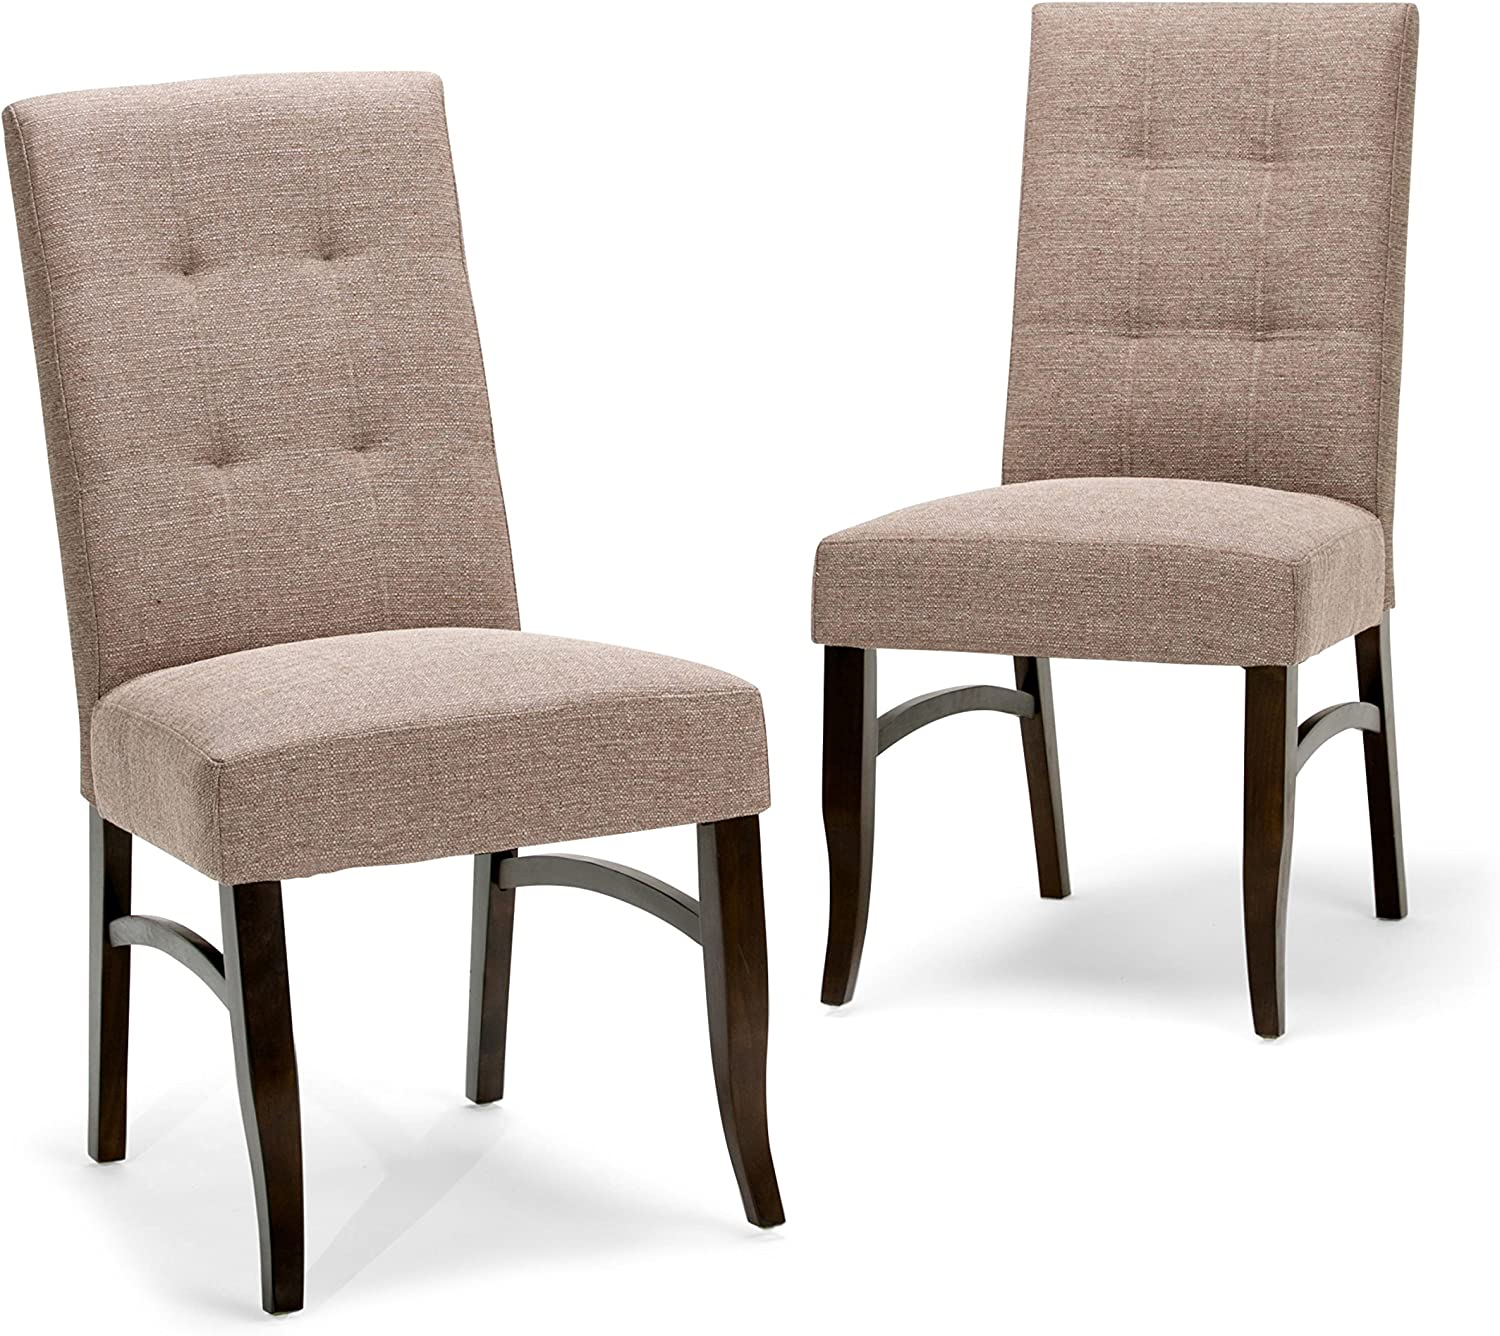 SIMPLIHOME Ezra Contemporary Deluxe Dining Chair (Set of 2) in Fawn Brown Linen Look Fabric